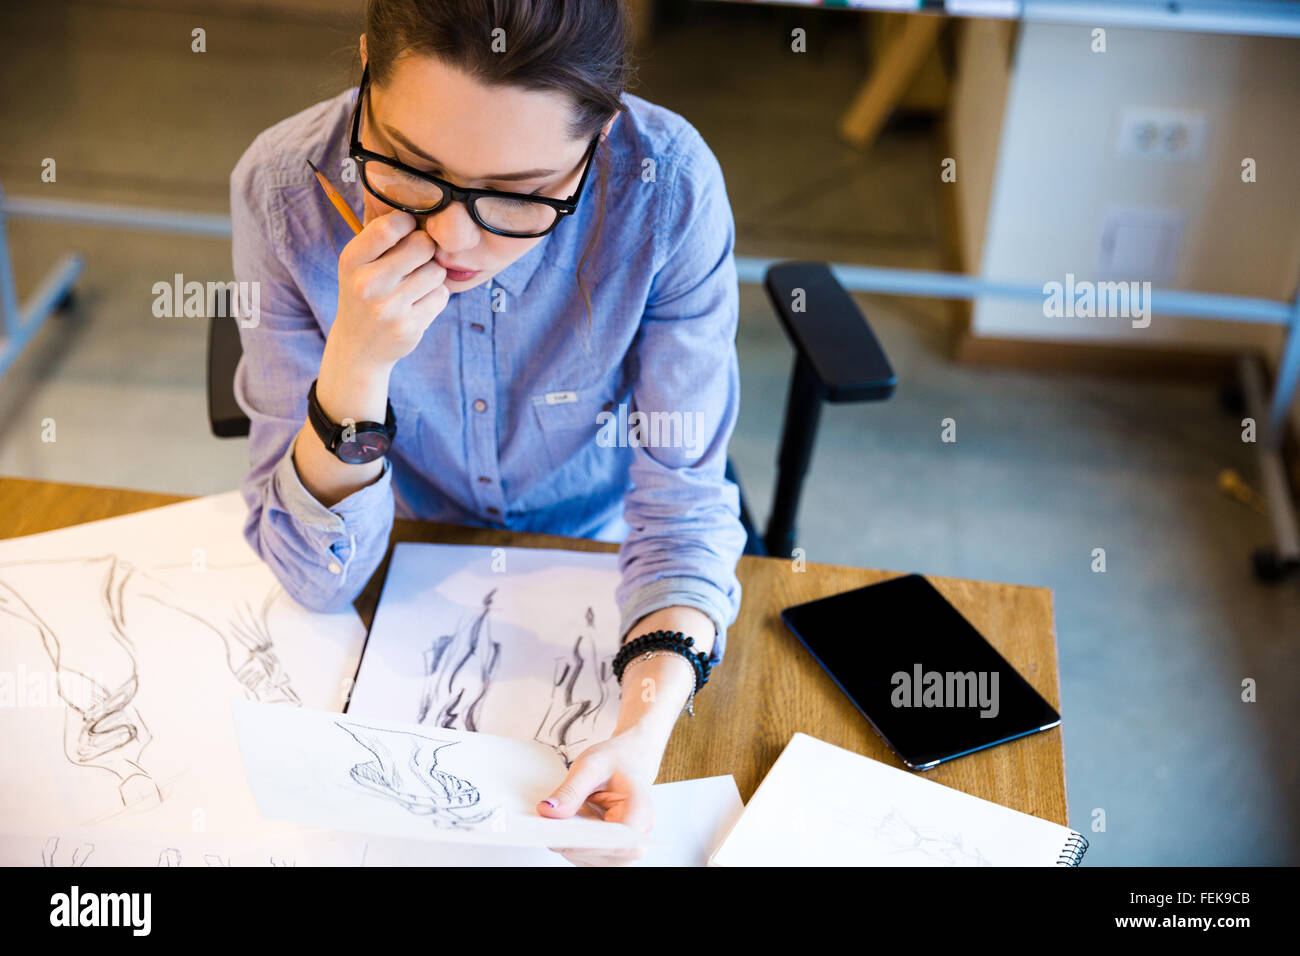 Top view of pensive pretty young woman fashion designer sitting on workplace and looking at sketches - Stock Image